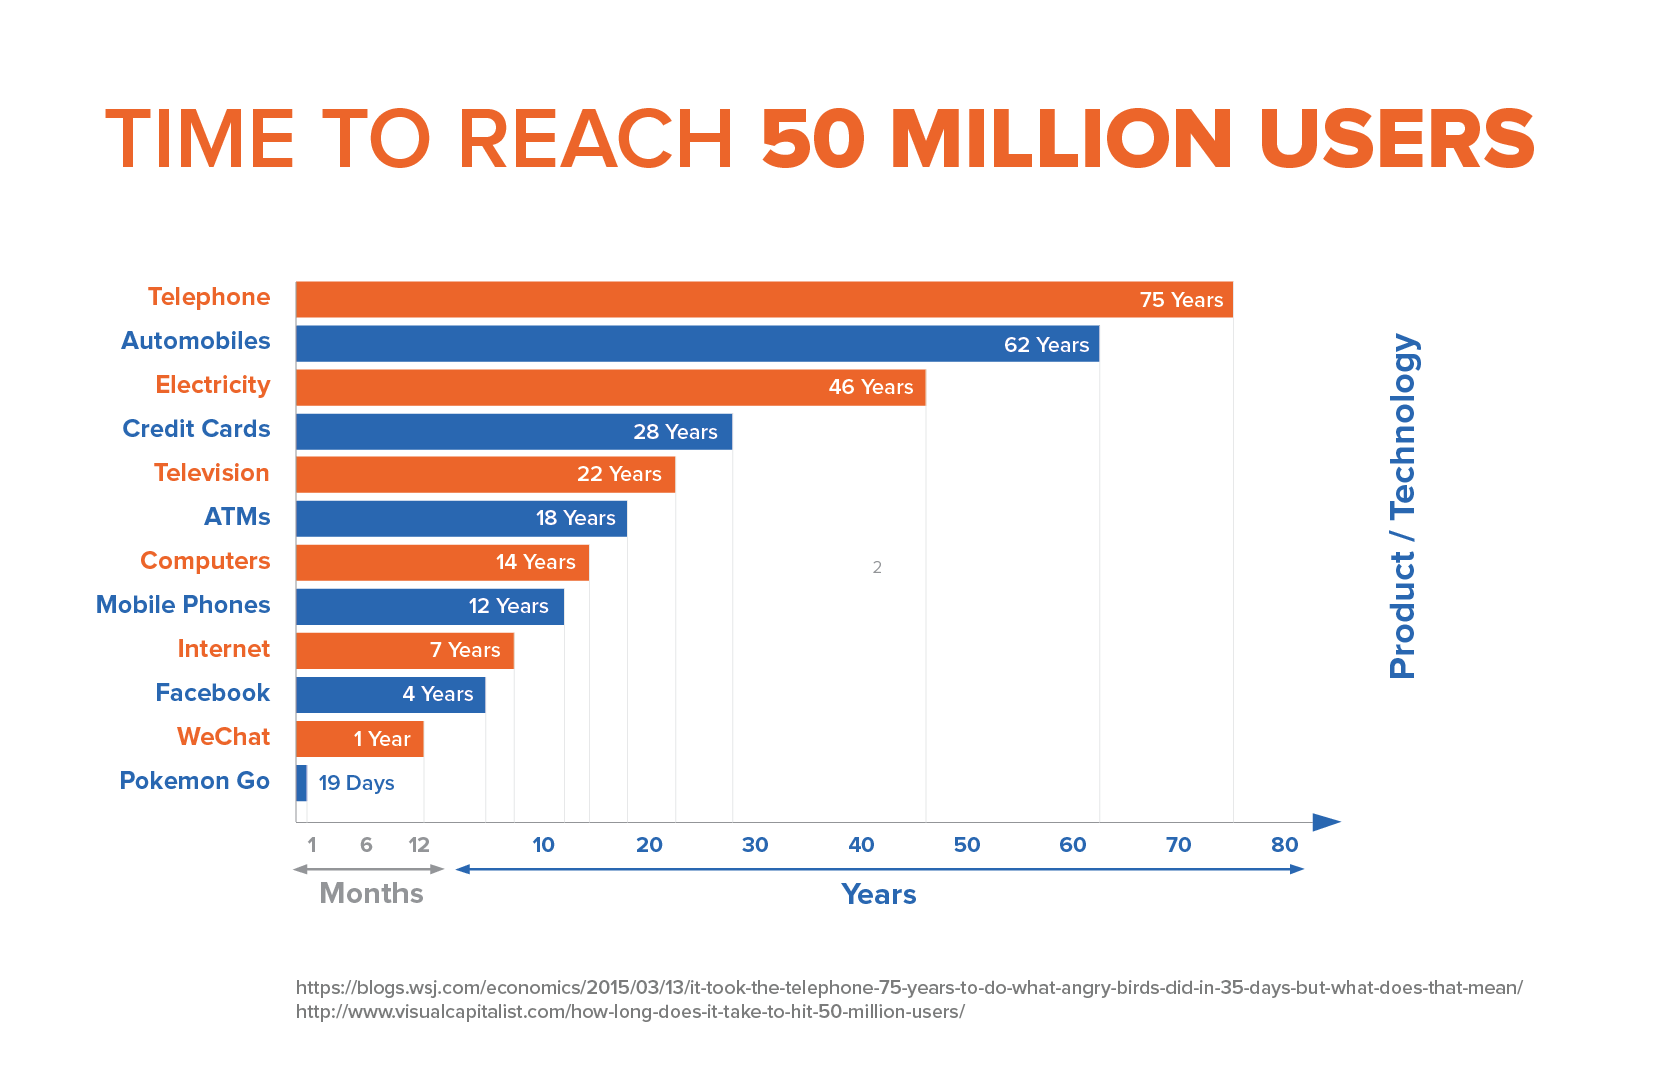 Time too reach 50 million users